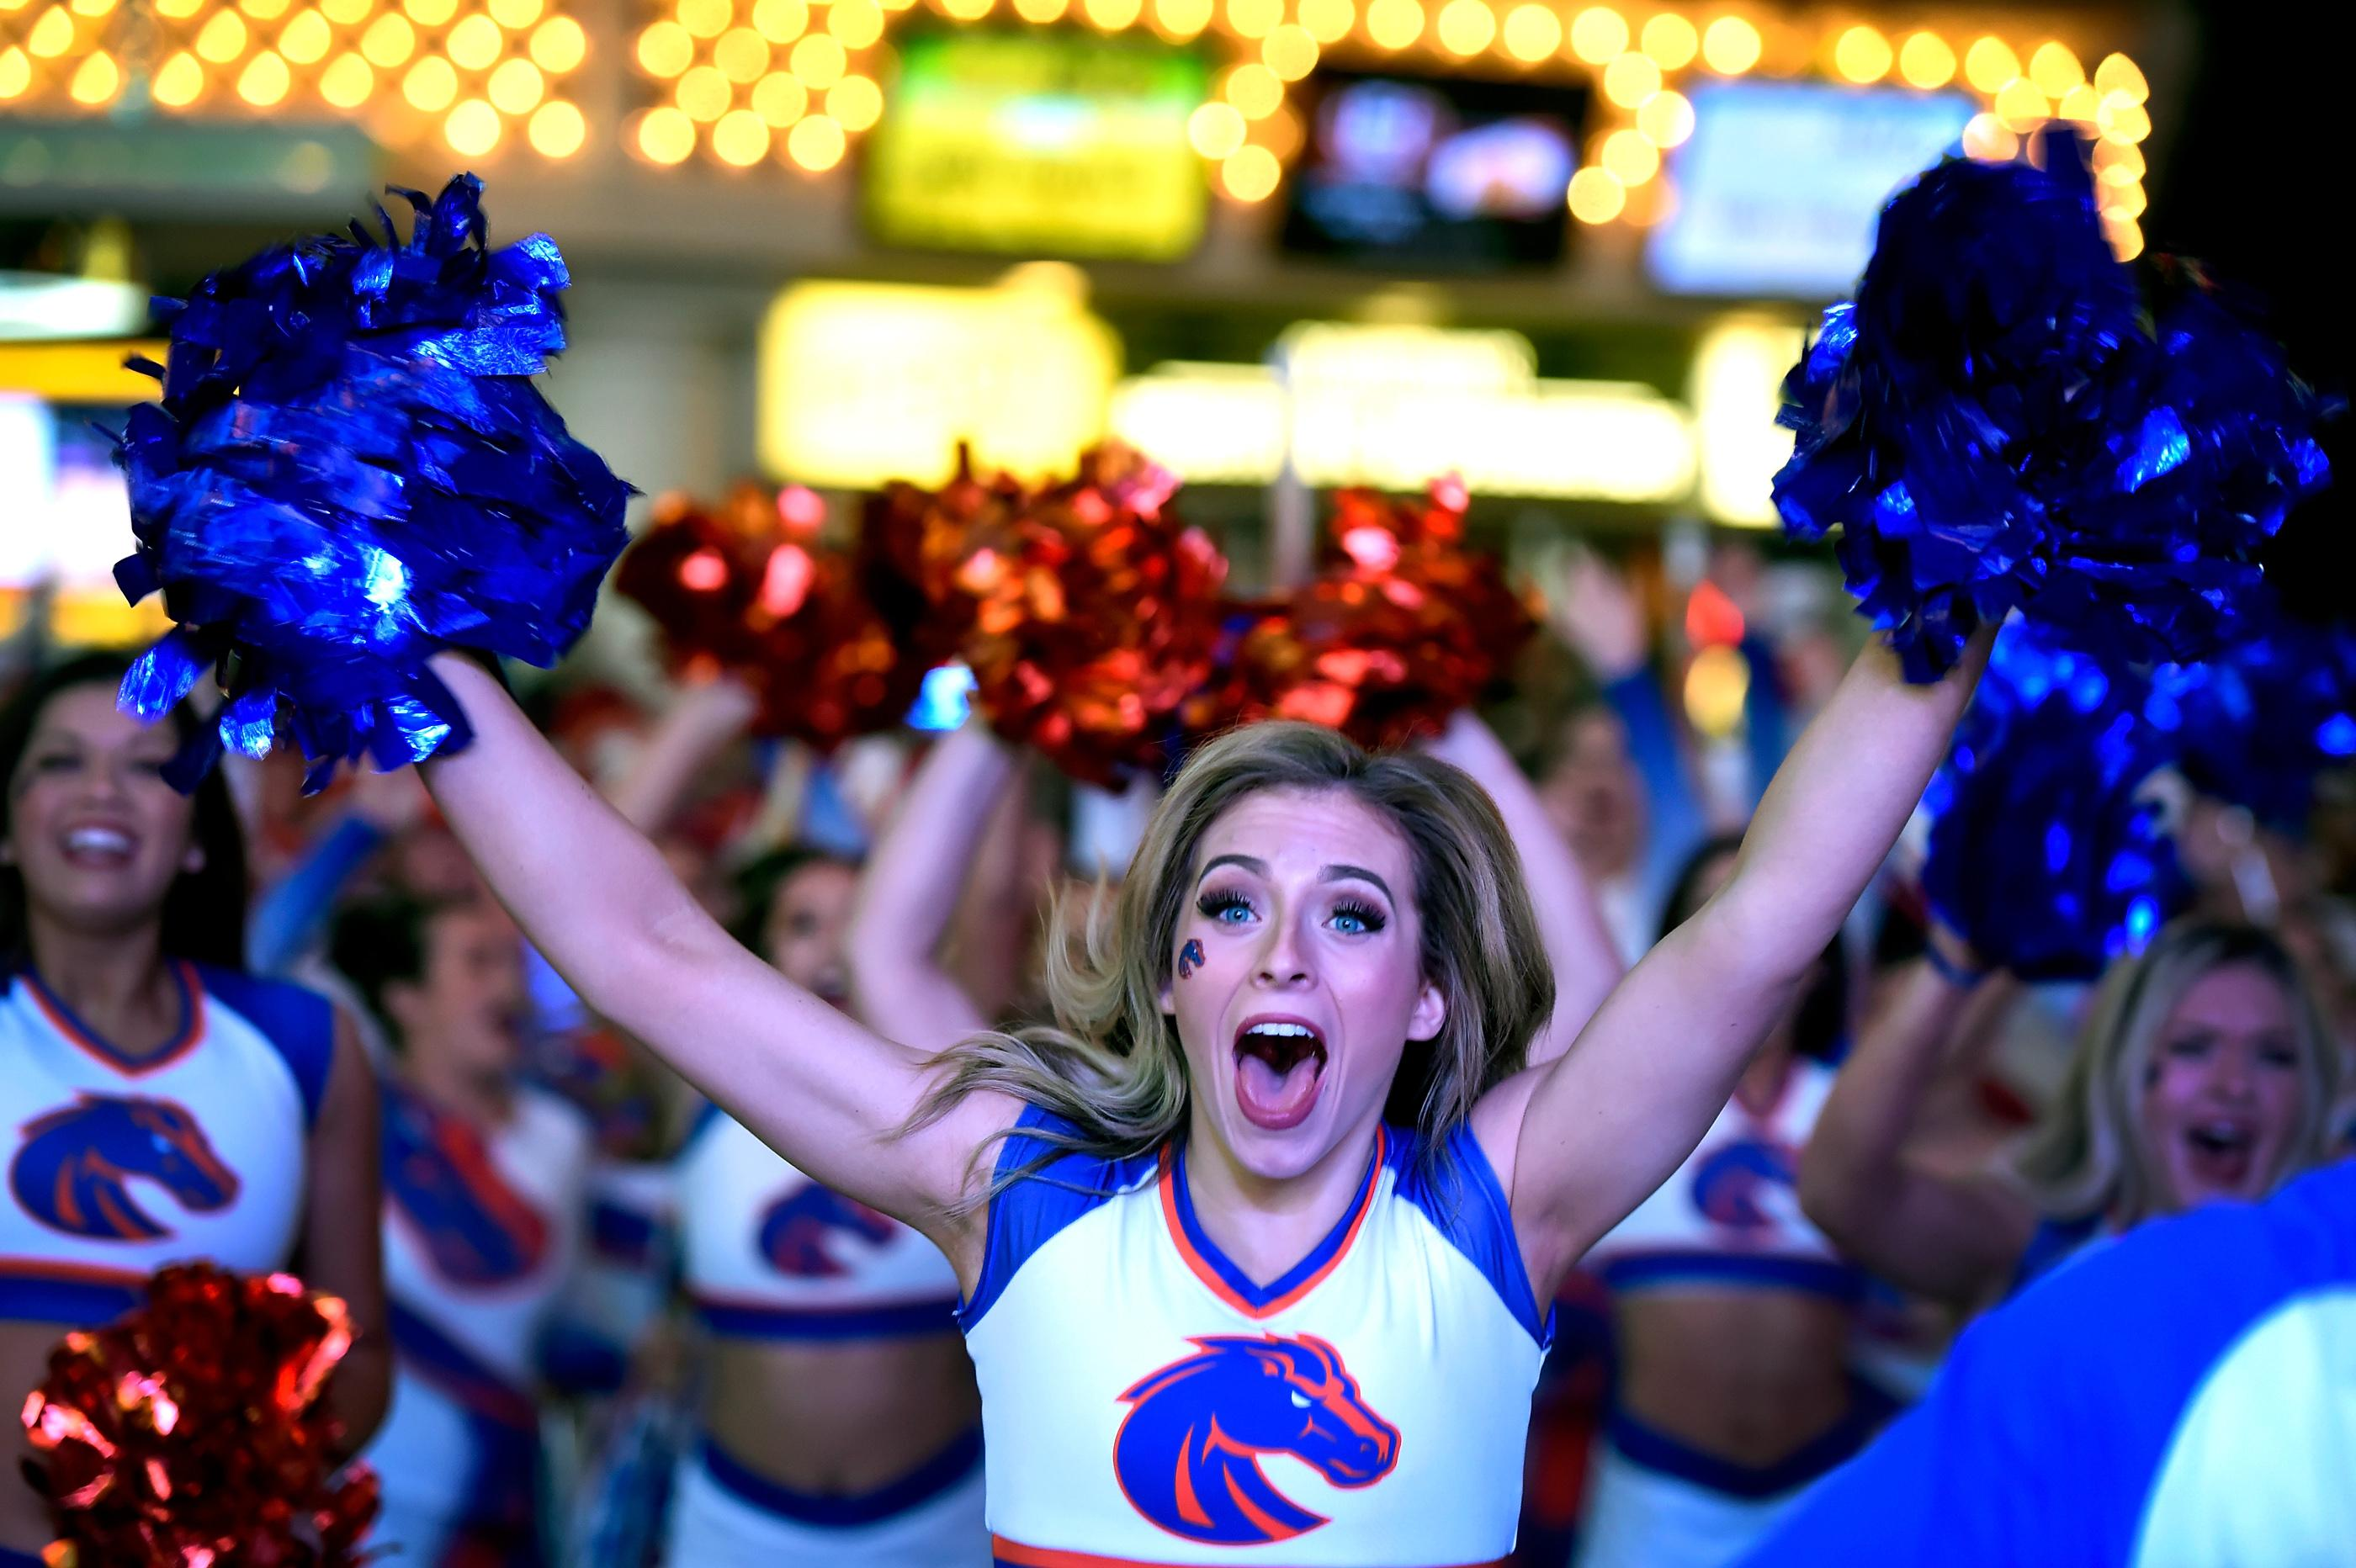 Boise State cheerleader Chelsea Borlase participates during a pep rally at the Fremont Street Experience Friday, Dec. 15, 2017, in Las Vegas. The Boise State Bronco will take on the Oregon Ducks in the 26th edition of the Las Vegas Bowl at Sam Boyd Stadium on Saturday. CREDIT: David Becker/Las Vegas News Bureau